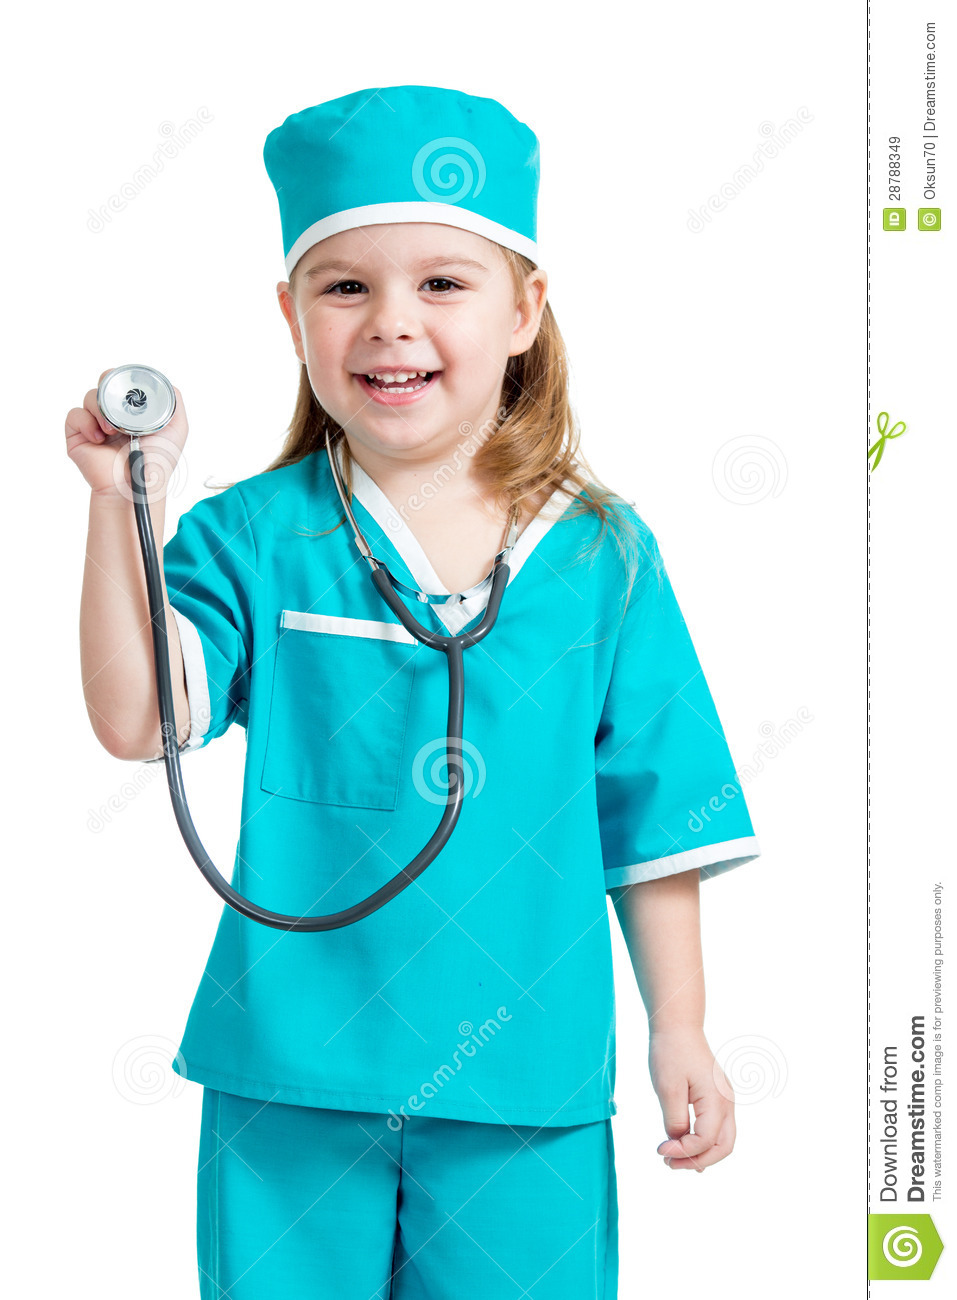 the united states map with Royalty Free Stock Images Adorable Kid Girl Uniformed As Doctor Isolated White Backgr Image28788349 on Stock Photography Golden Football Cup Image22705162 likewise Royalty Free Stock Image Tank Top Image16941096 further Royalty Free Stock Photos Vector Transport Icons White Background Image31356178 likewise Boot C besides Stock Image Architect Tools Image57241.